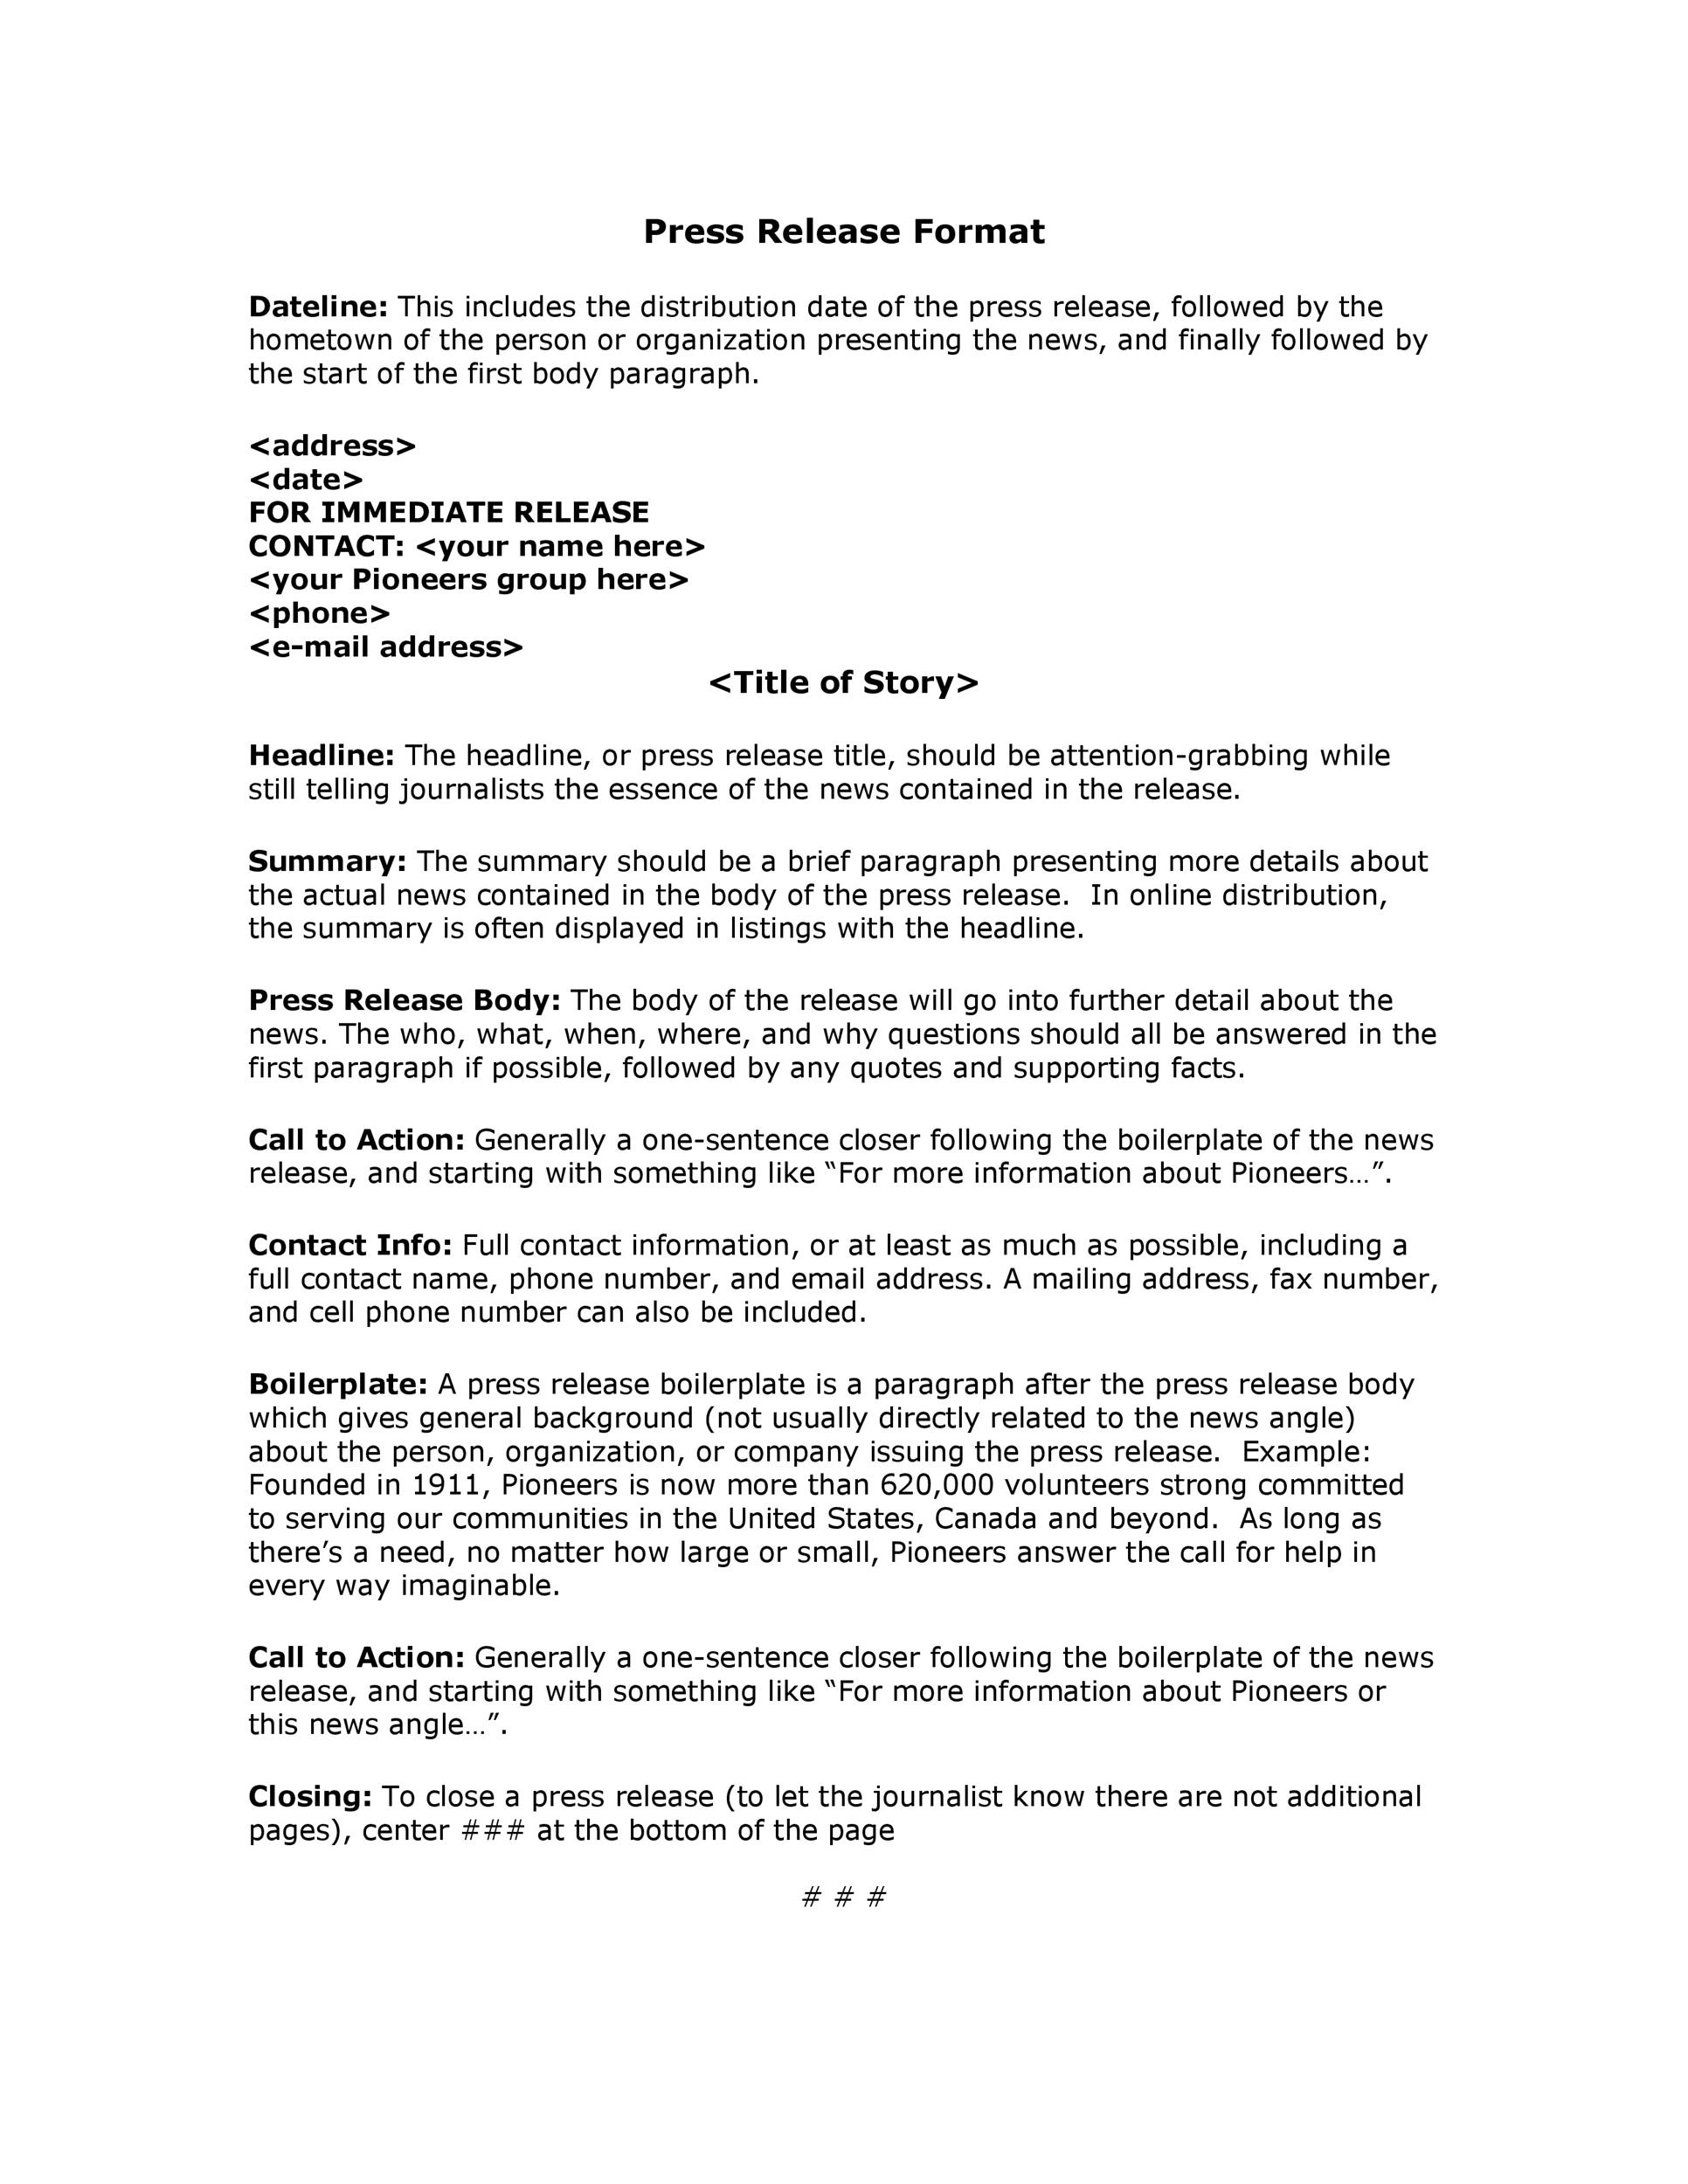 Free Press release template 27